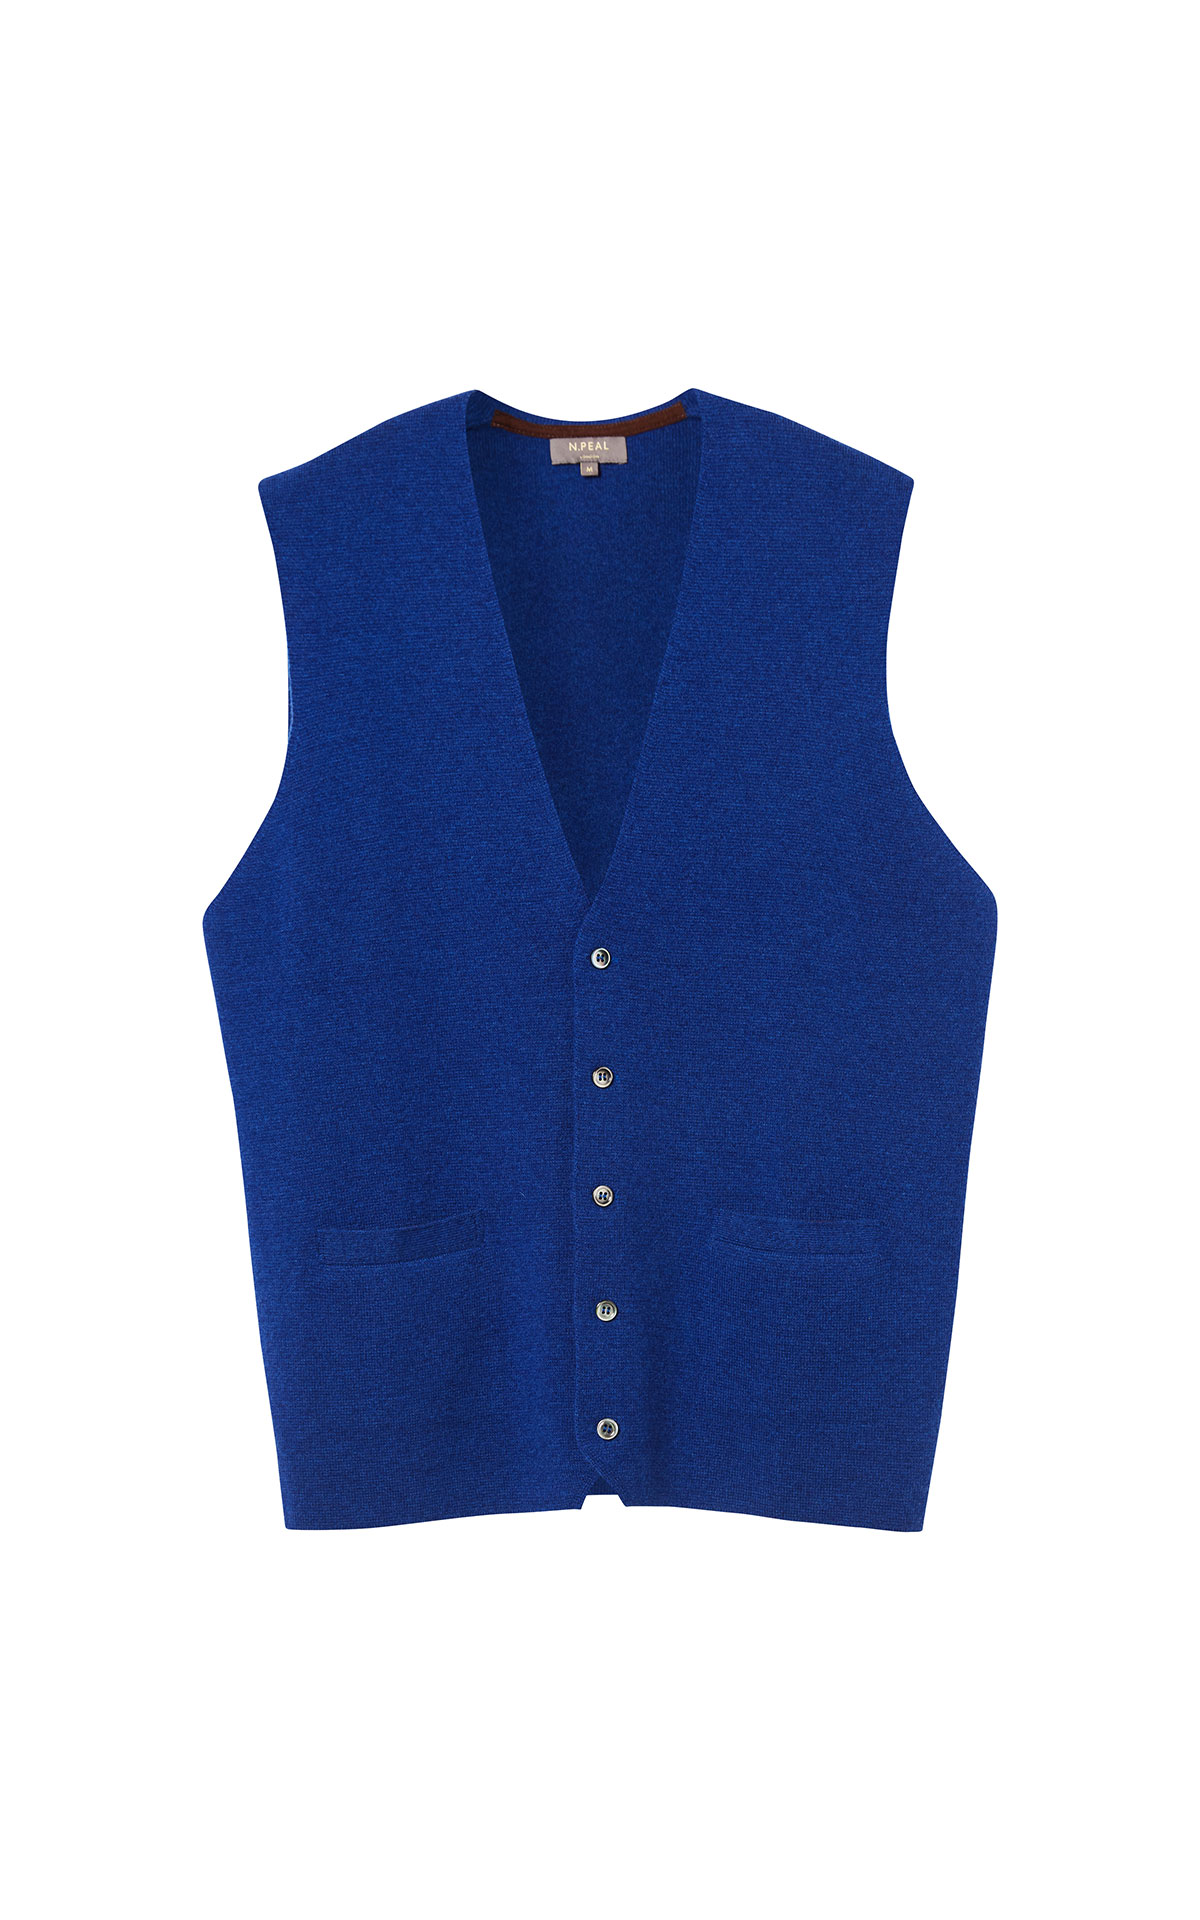 N. Peal Chelsea Milano waistcoat from Bicester Village